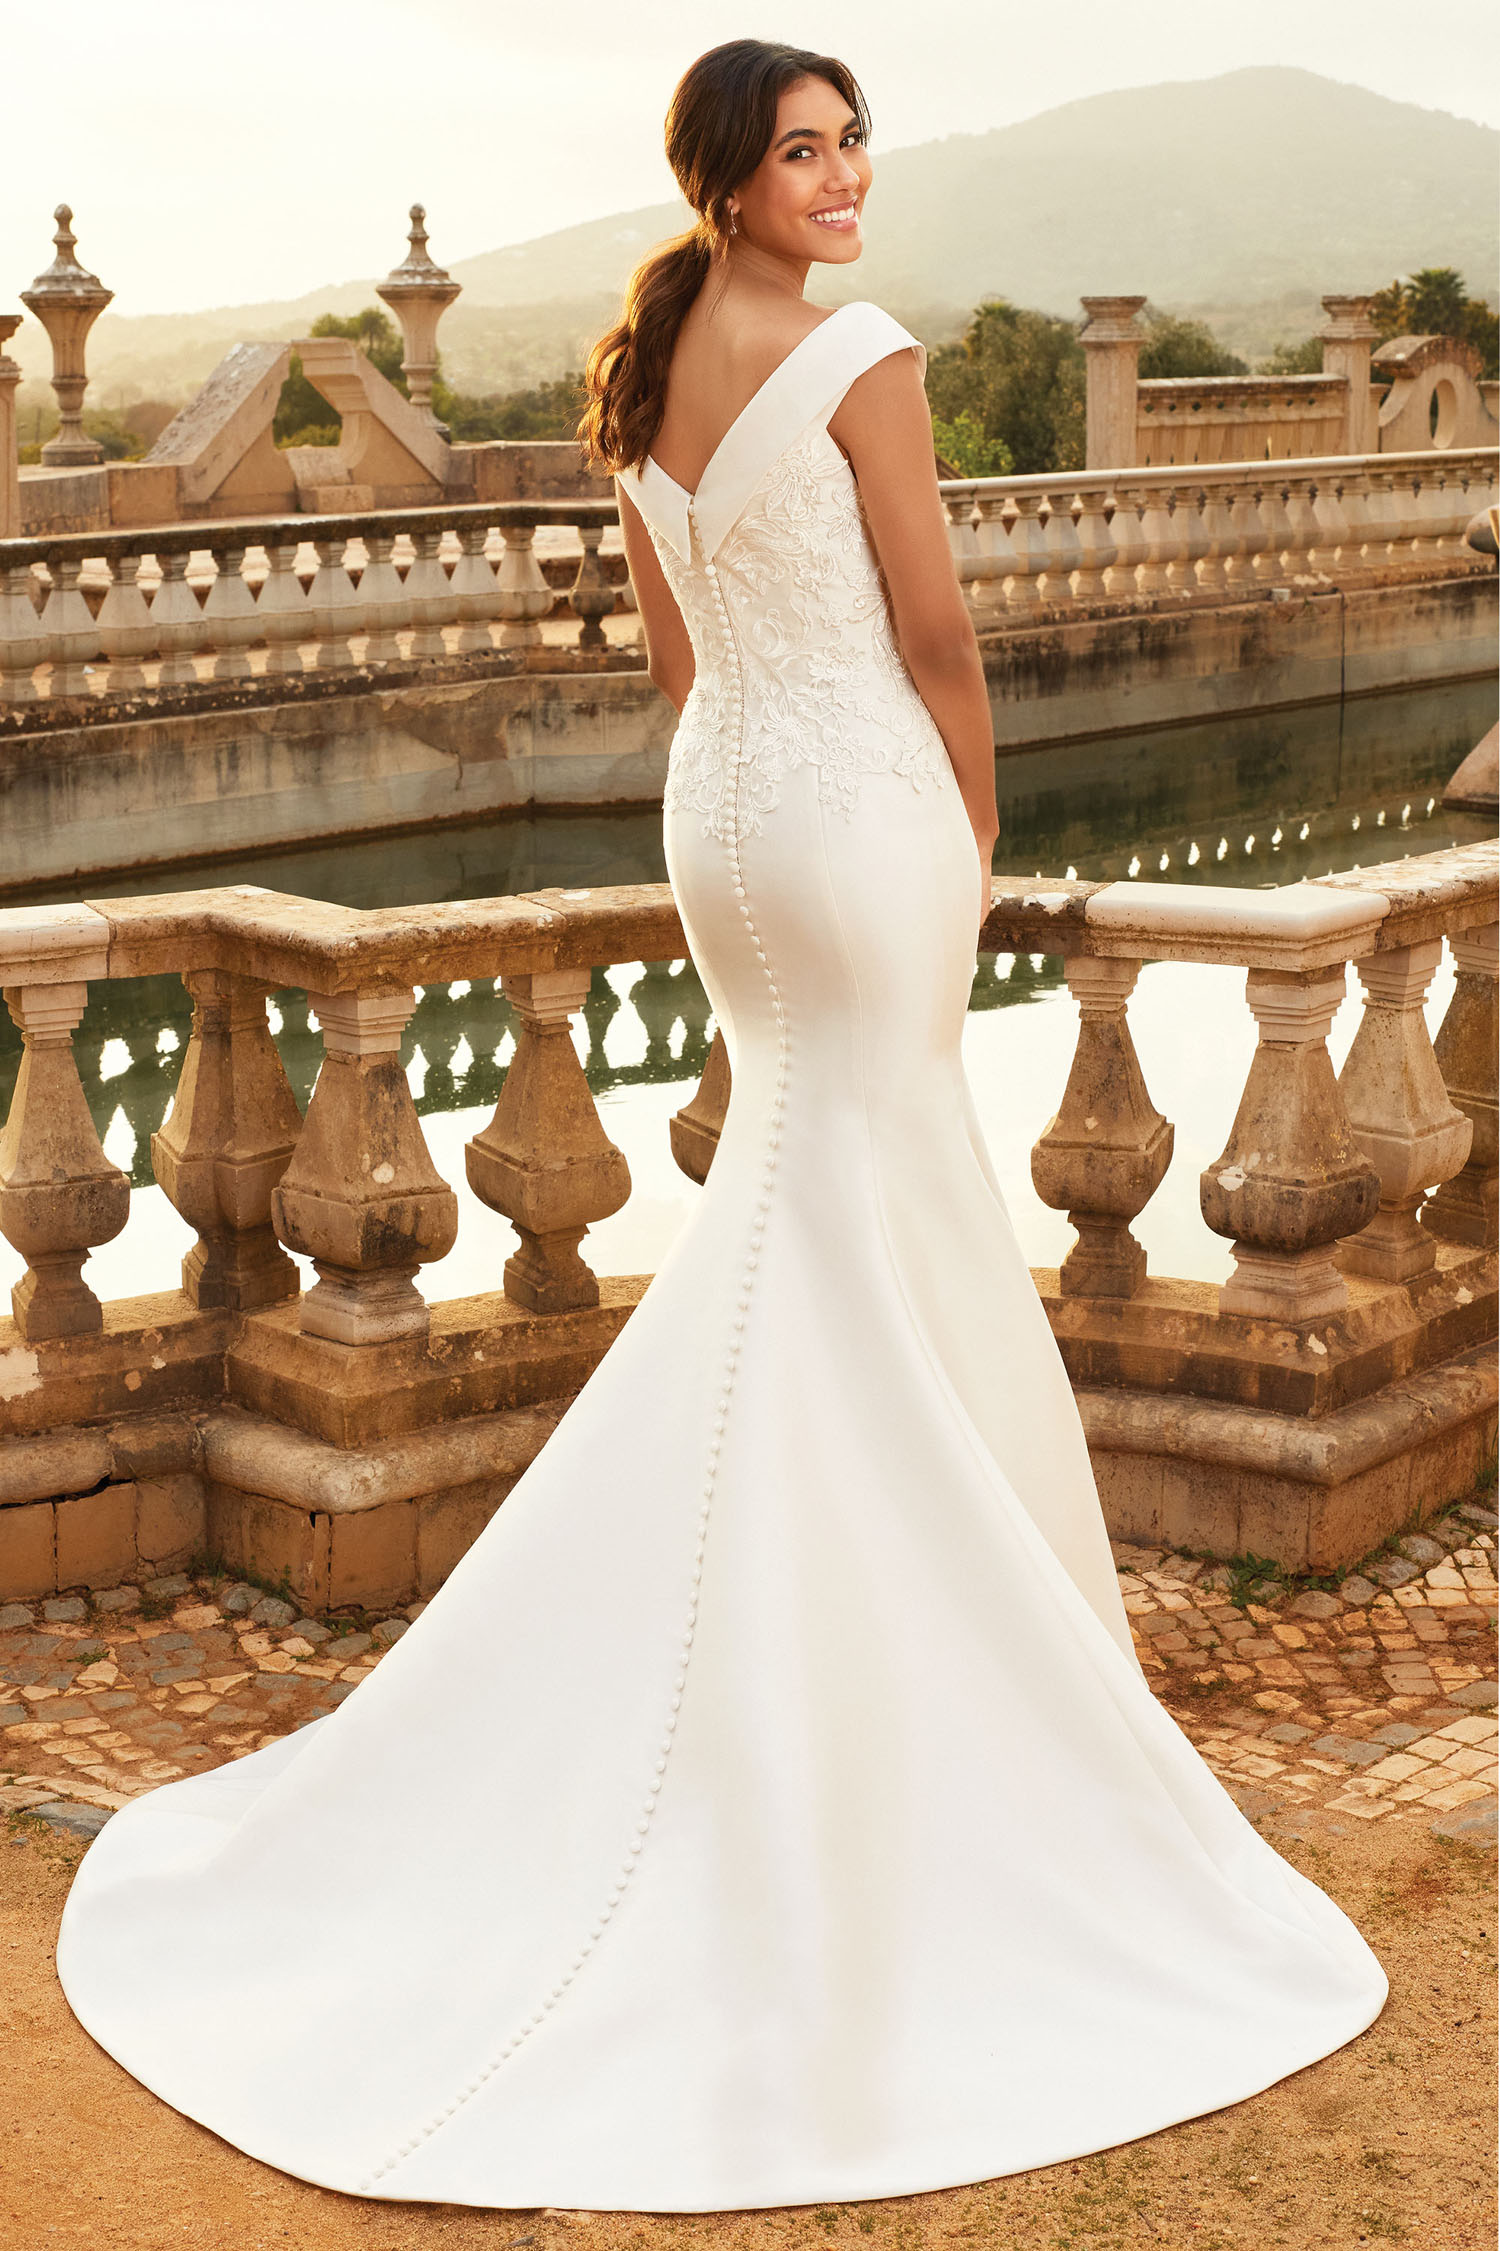 Bride wearing ivory trumpet style gown with bardot neckline.